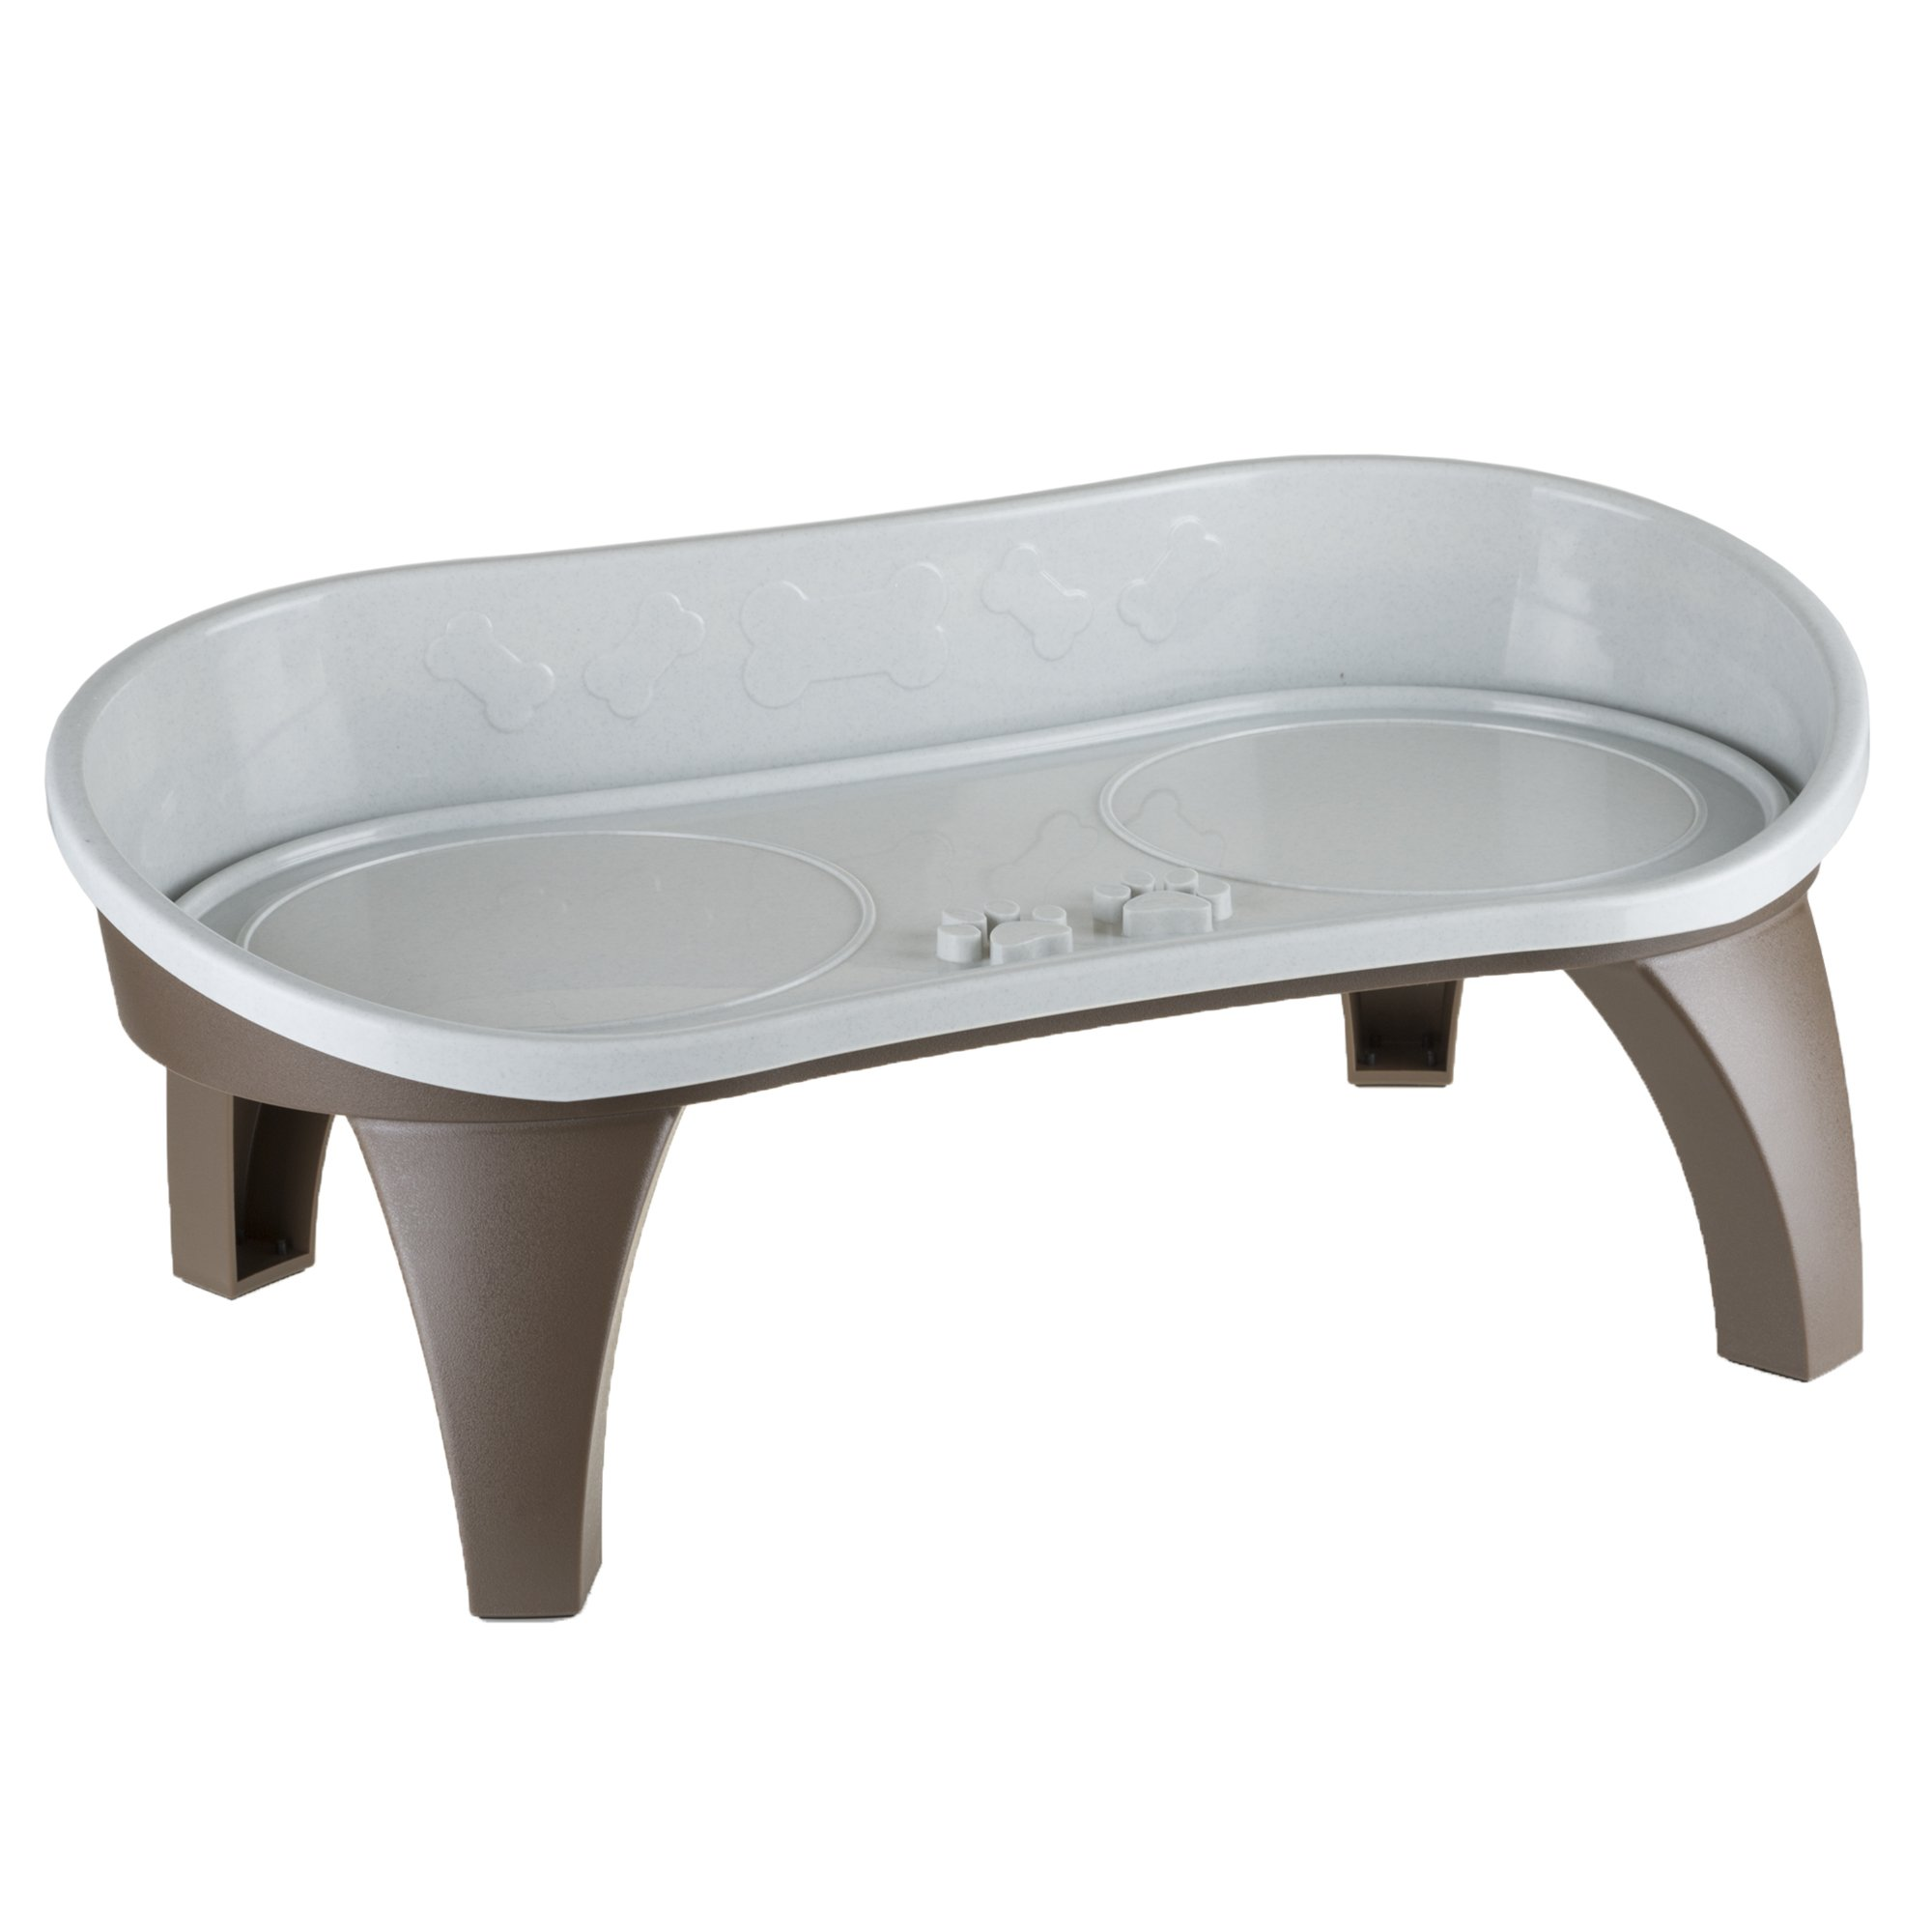 PETMAKER Elevated Pet Feeding Tray with splash guard and non-skid feet 21in x 11in x 8.5in by